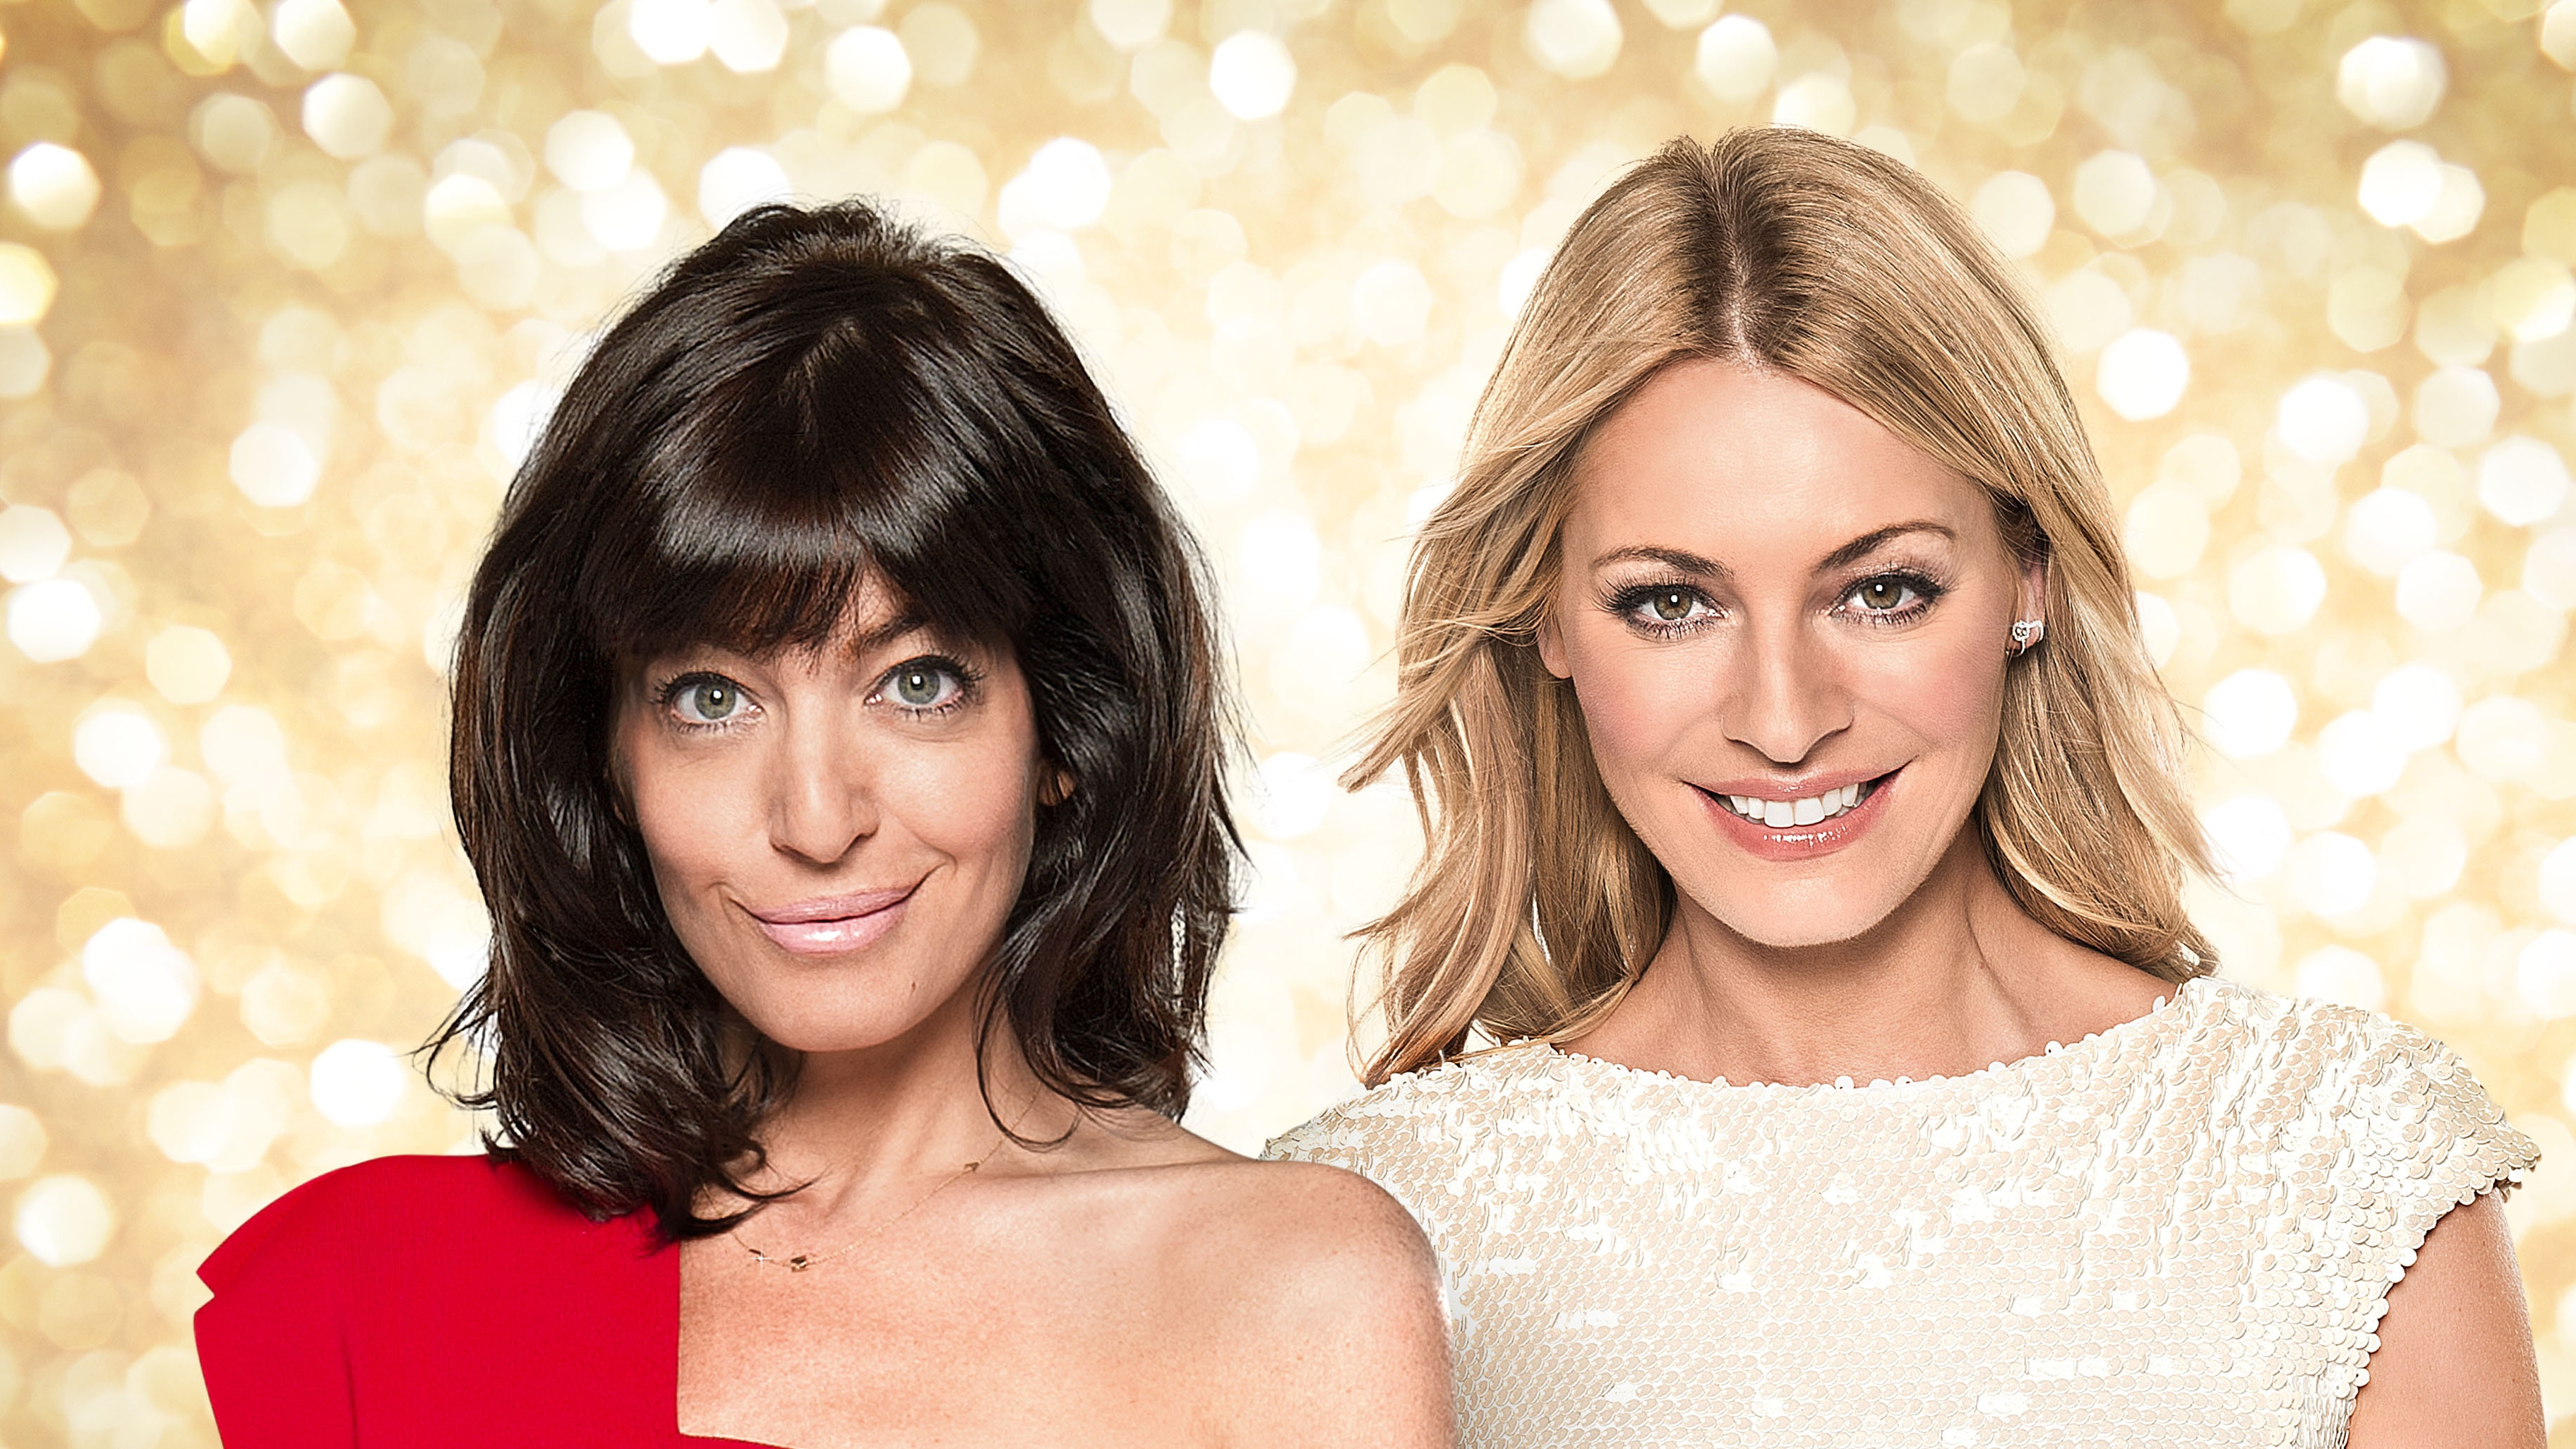 Strictly Come Dancing hosts Claudia Winkleman and Tess Daly (Ray Burmiston/Press Association Images)